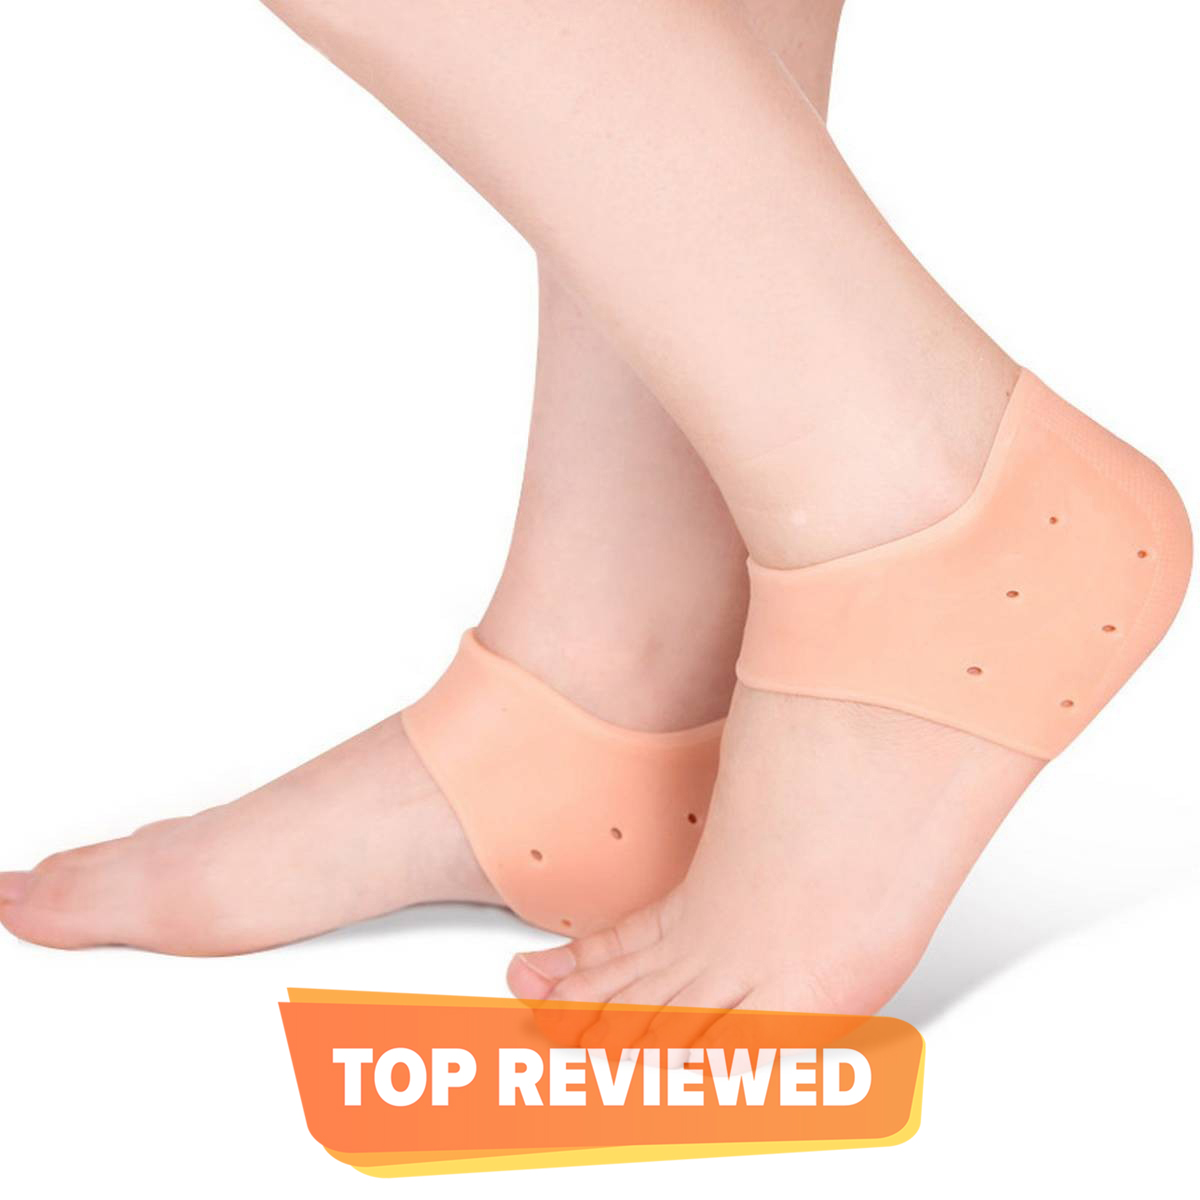 1 Pair(2 Pieces)Silicon Gel Heel Pad, Heel Silicon Pads, Silicon Heel Pads, Heel Anti Crack Set, Silicone Gel Heel Pad Socks, Gel Heel Pads, Heel Gel Pad, Strong & Breathable Heel Cups for [Fast Heel Pain Relief], Blister, Heel Protectors for Men & Women